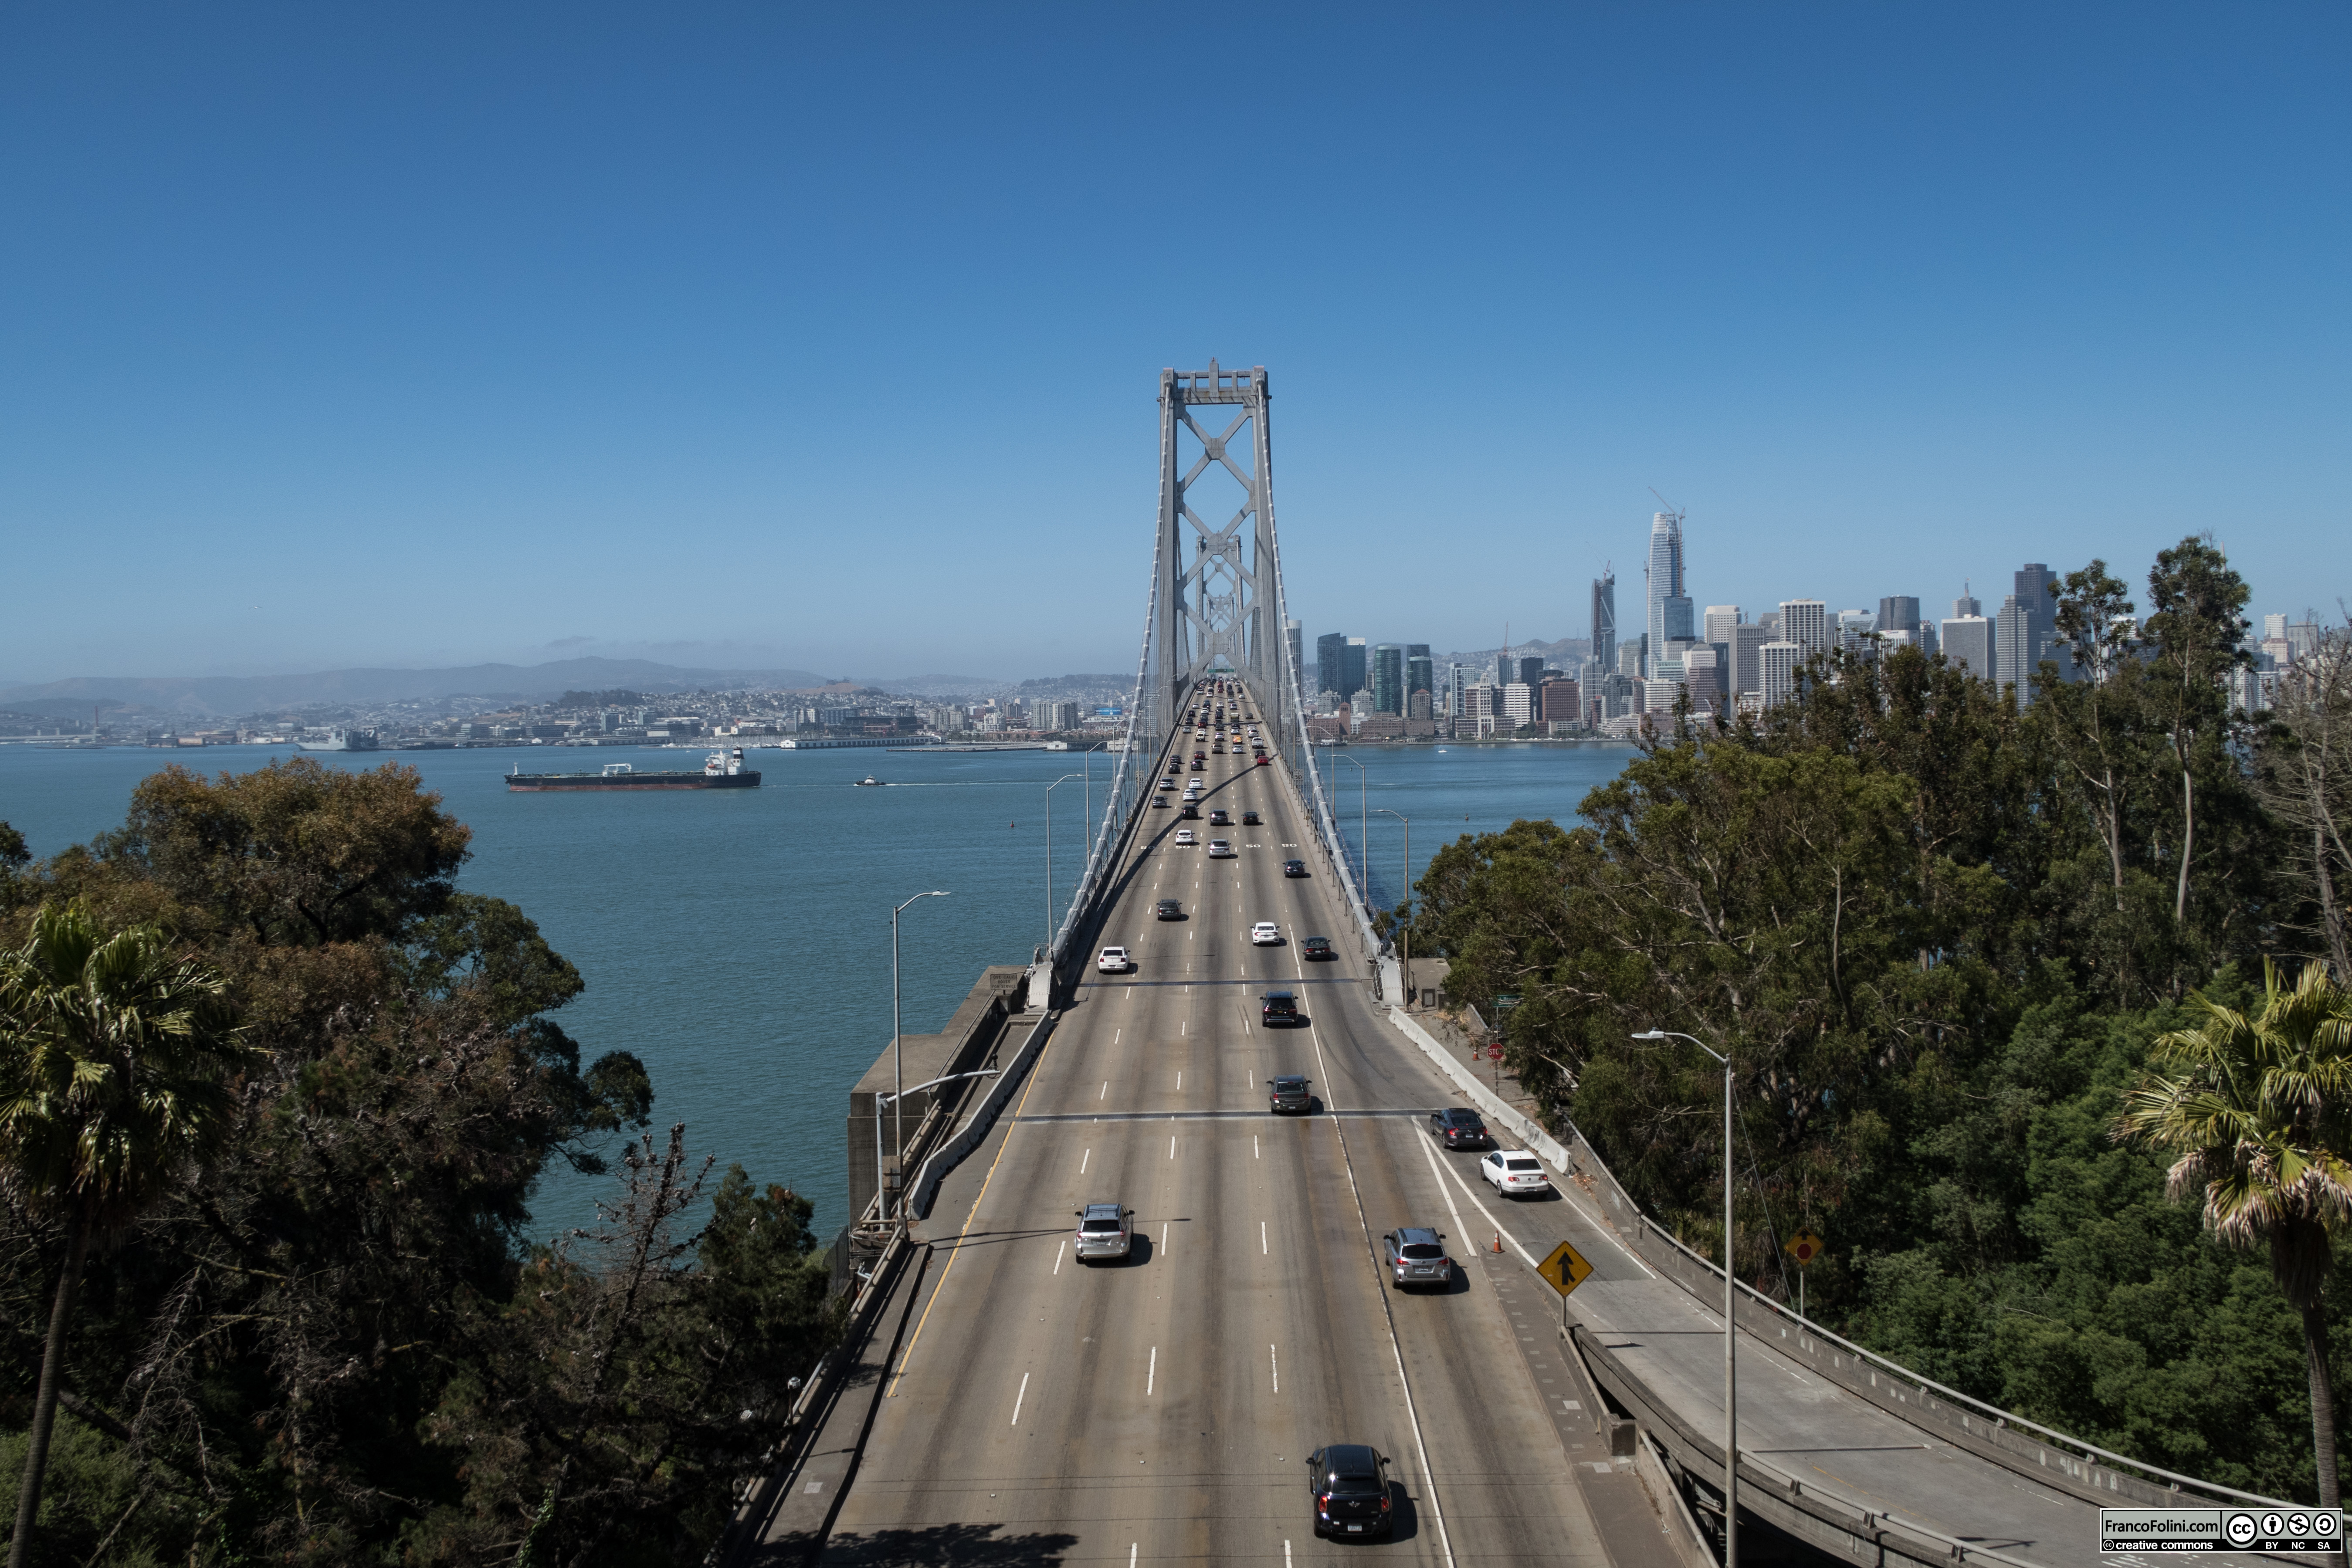 Il tratto del Bay Bridge tra Treasure Island e San Francisco visto dalla collina di Treasure Island